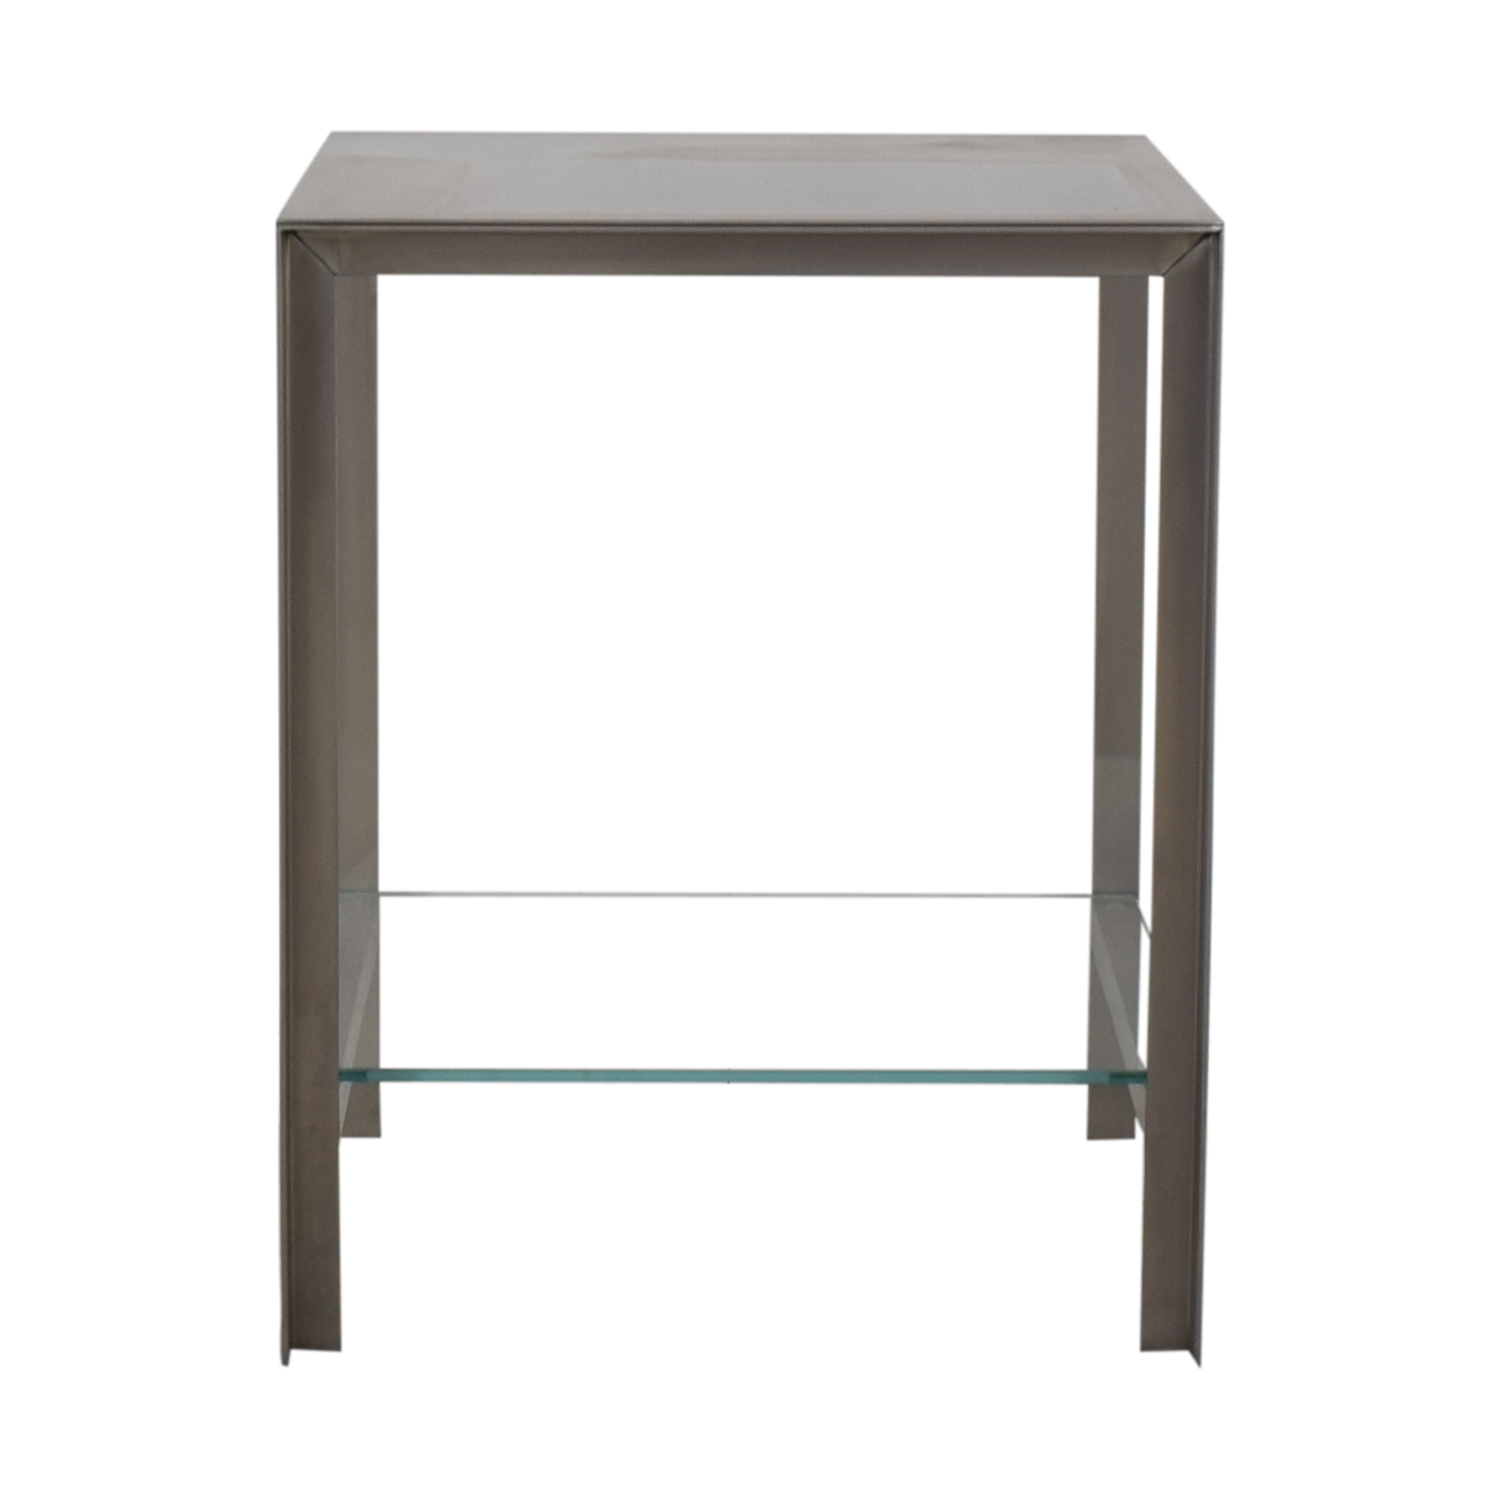 Desiron Desiron Chrome and Glass Square Console